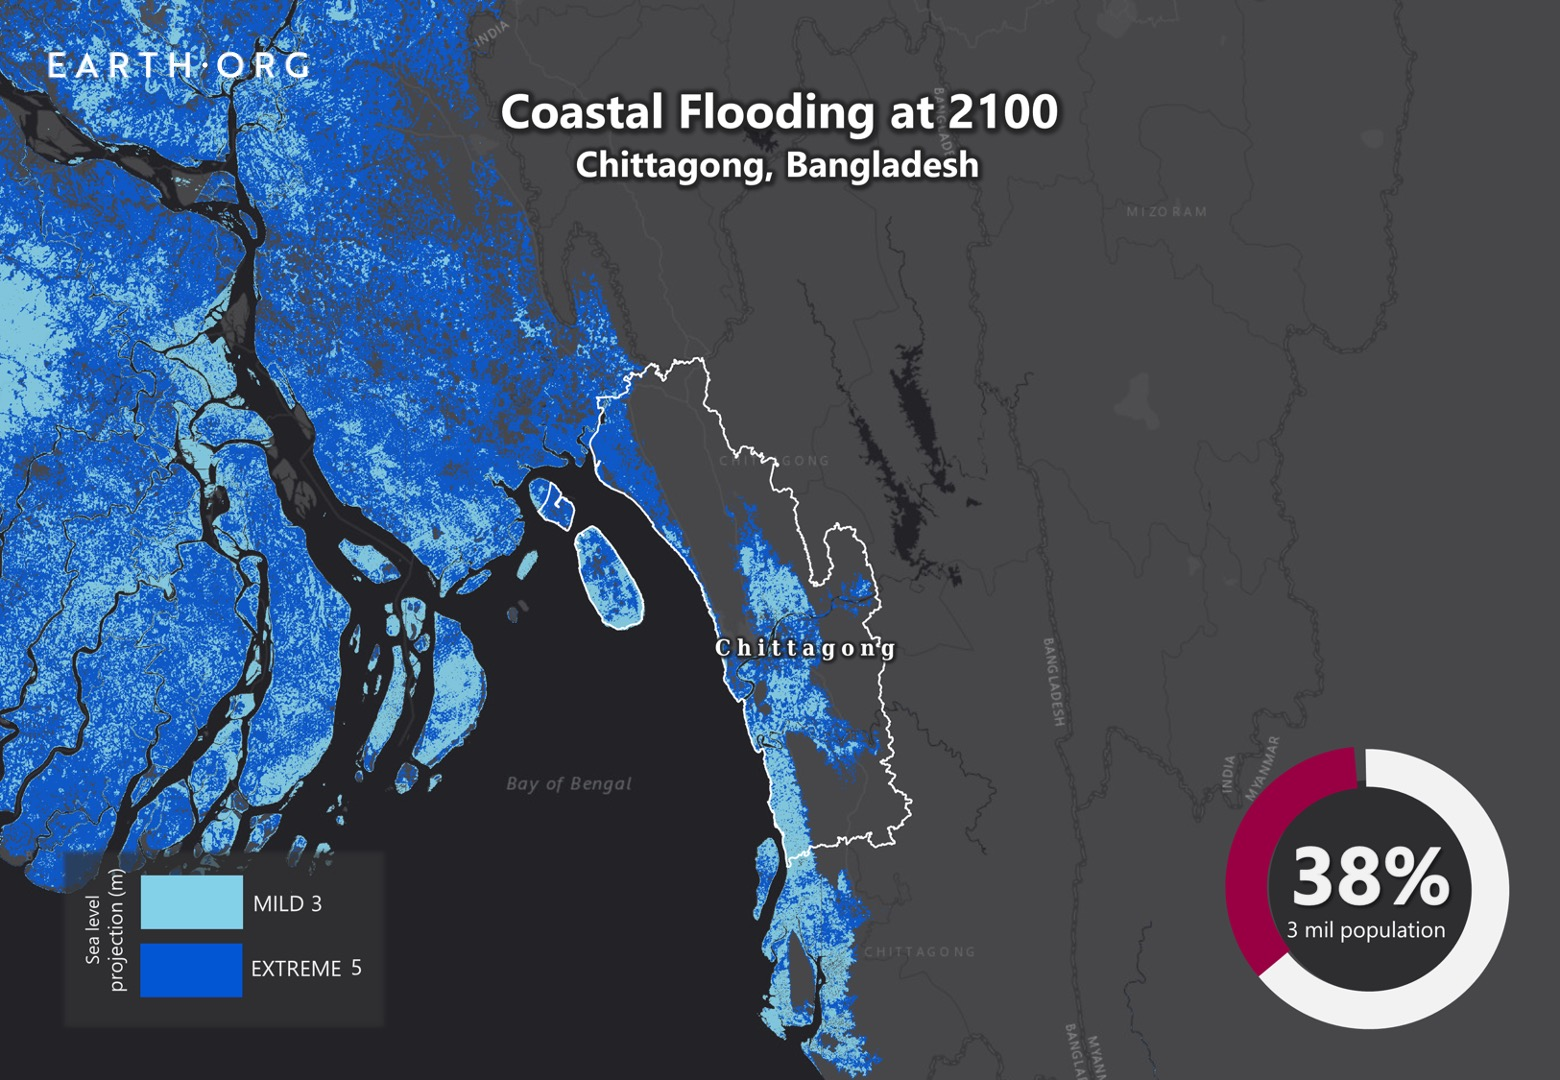 sea level rise by 2100 chittagong